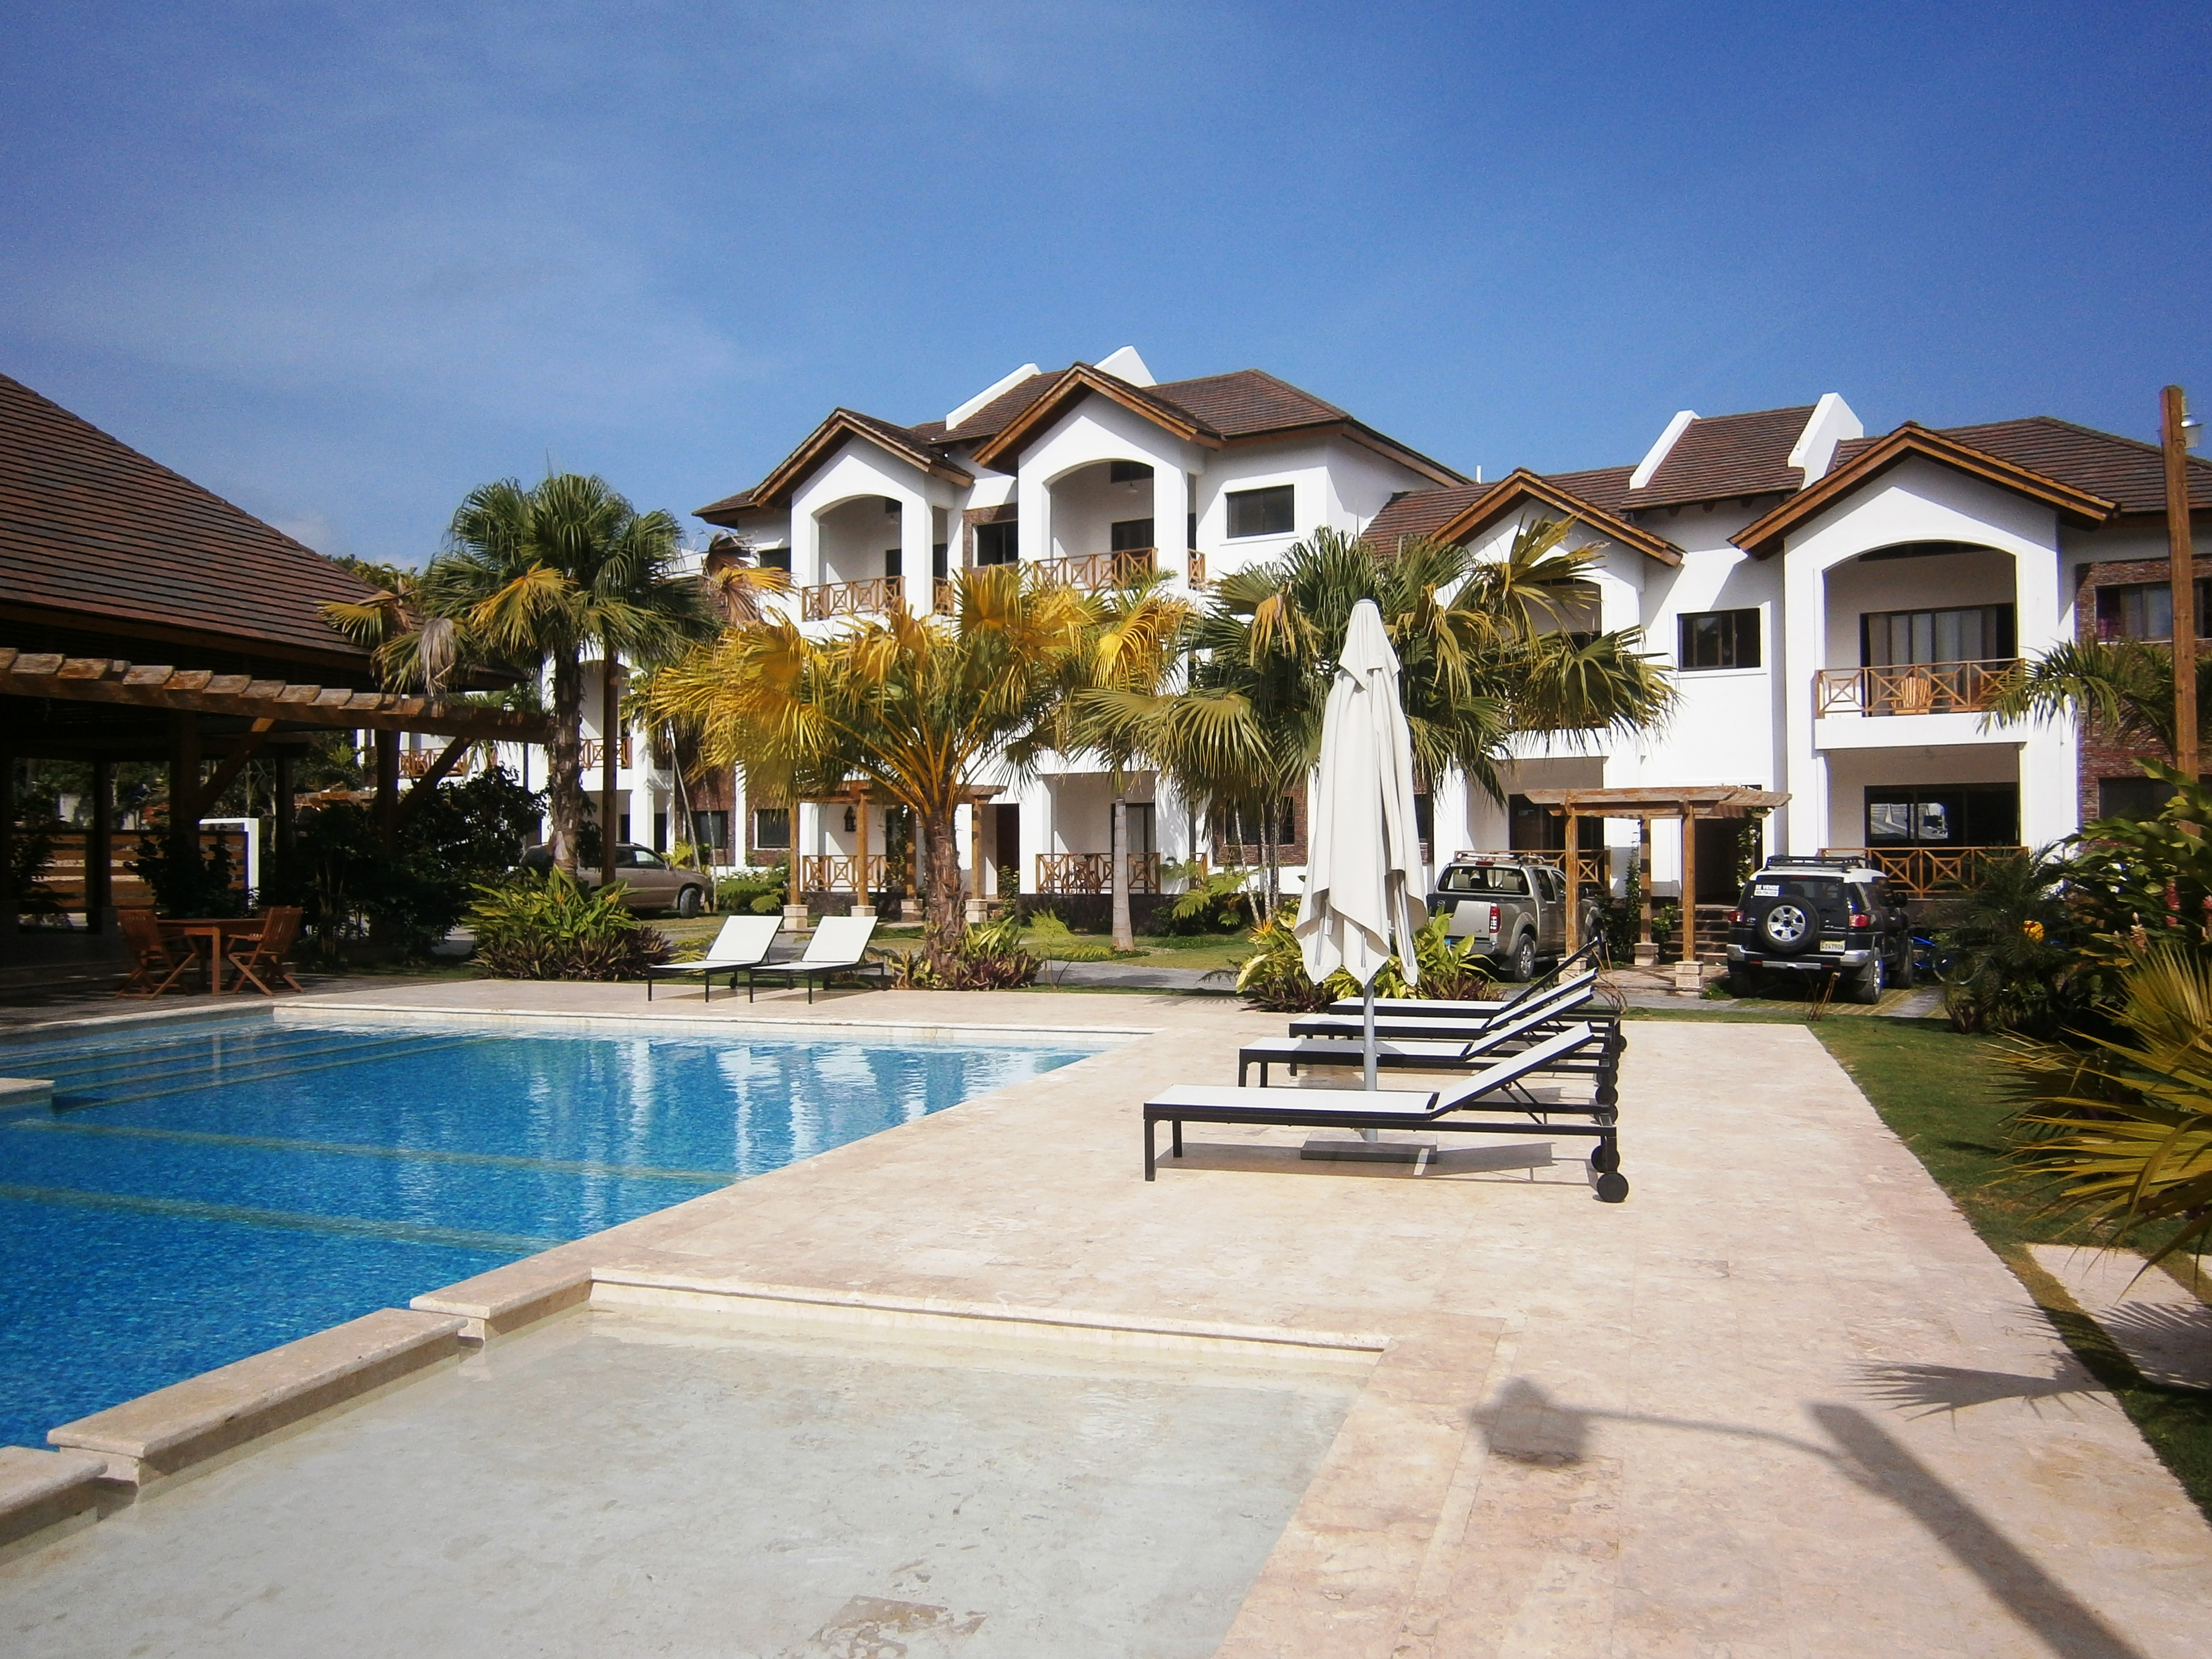 SPACIOUS 1 BED CONDO IN A FABULOUS GATED SECURE RESIDENCE  - $85,000 USD - A565LT